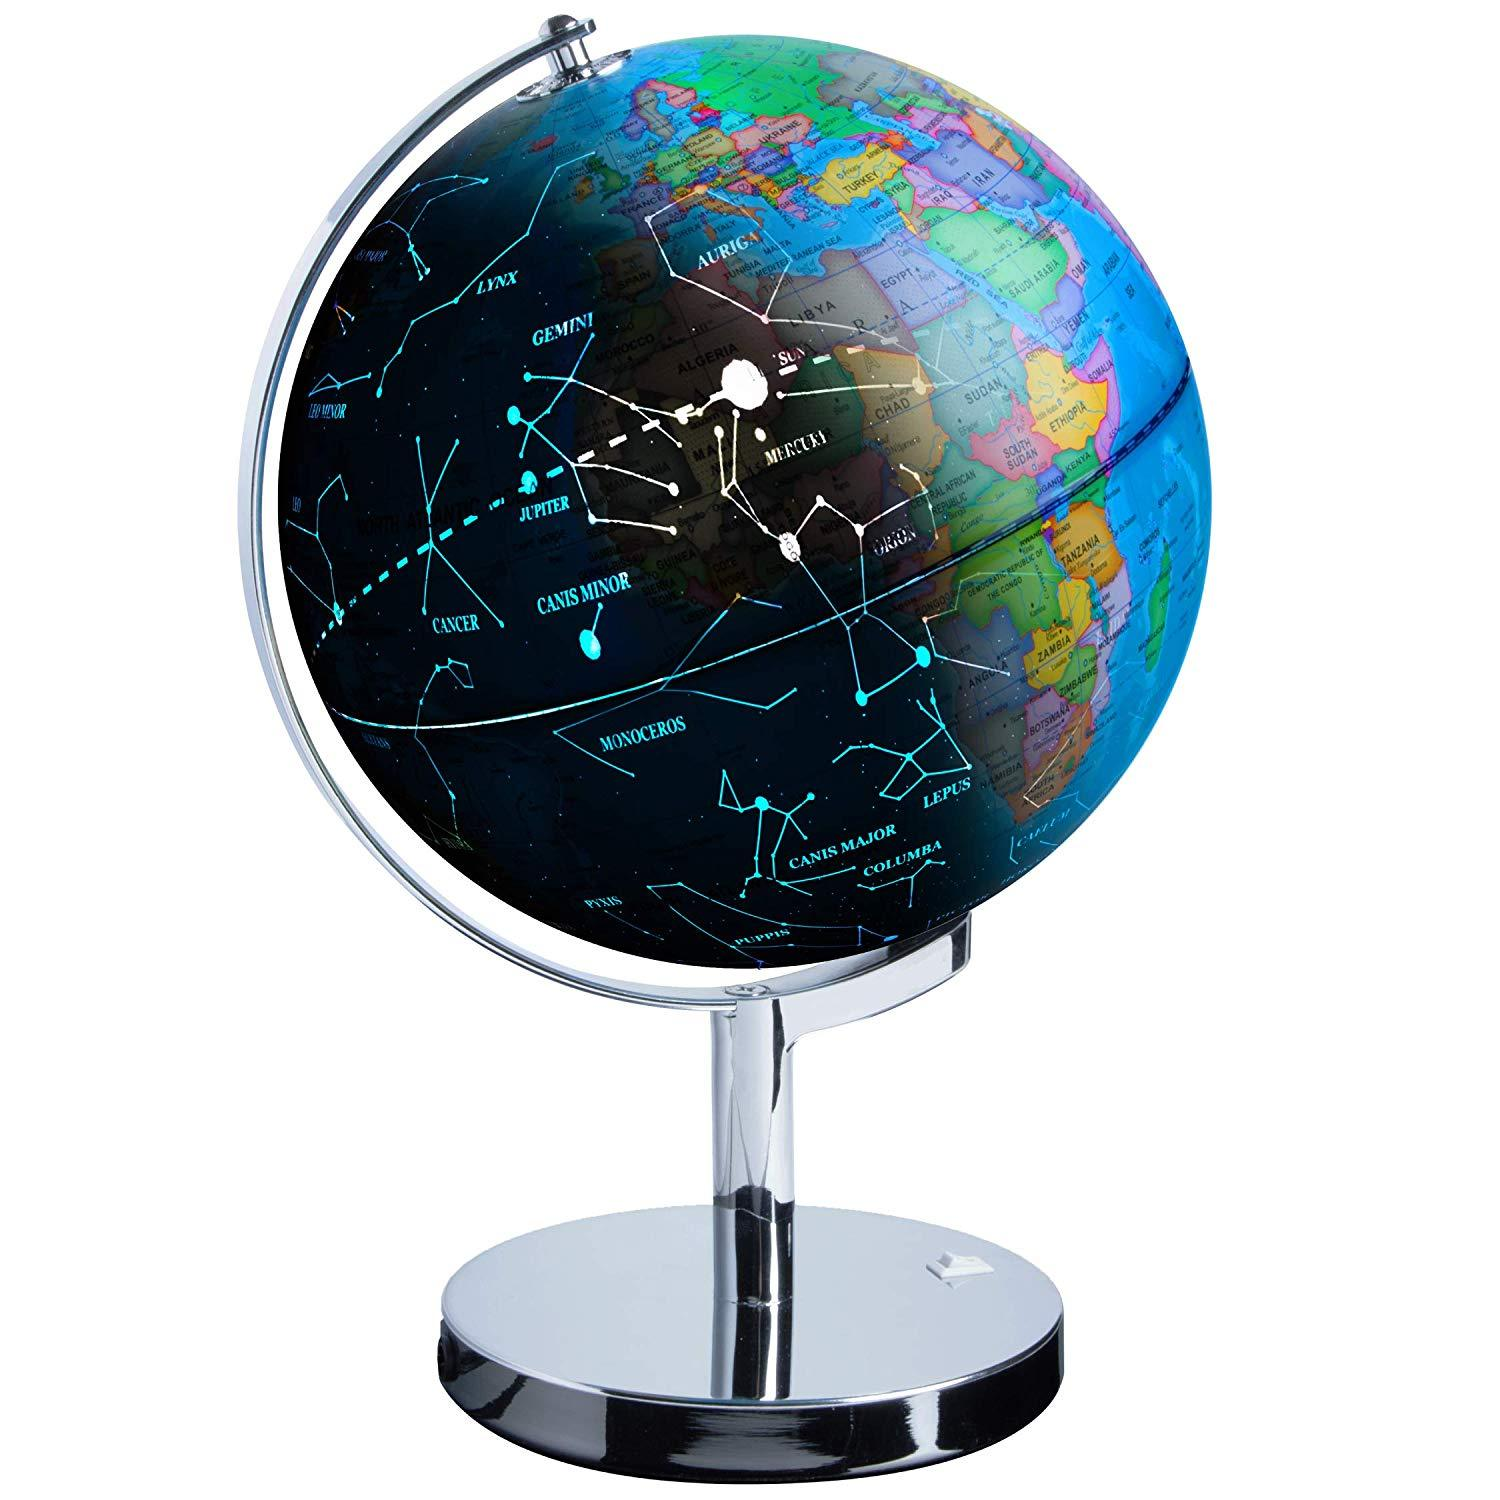 JuniorFX 3 in 1 Interactive Illuminated World Globe with Constellations | Monthly Madness